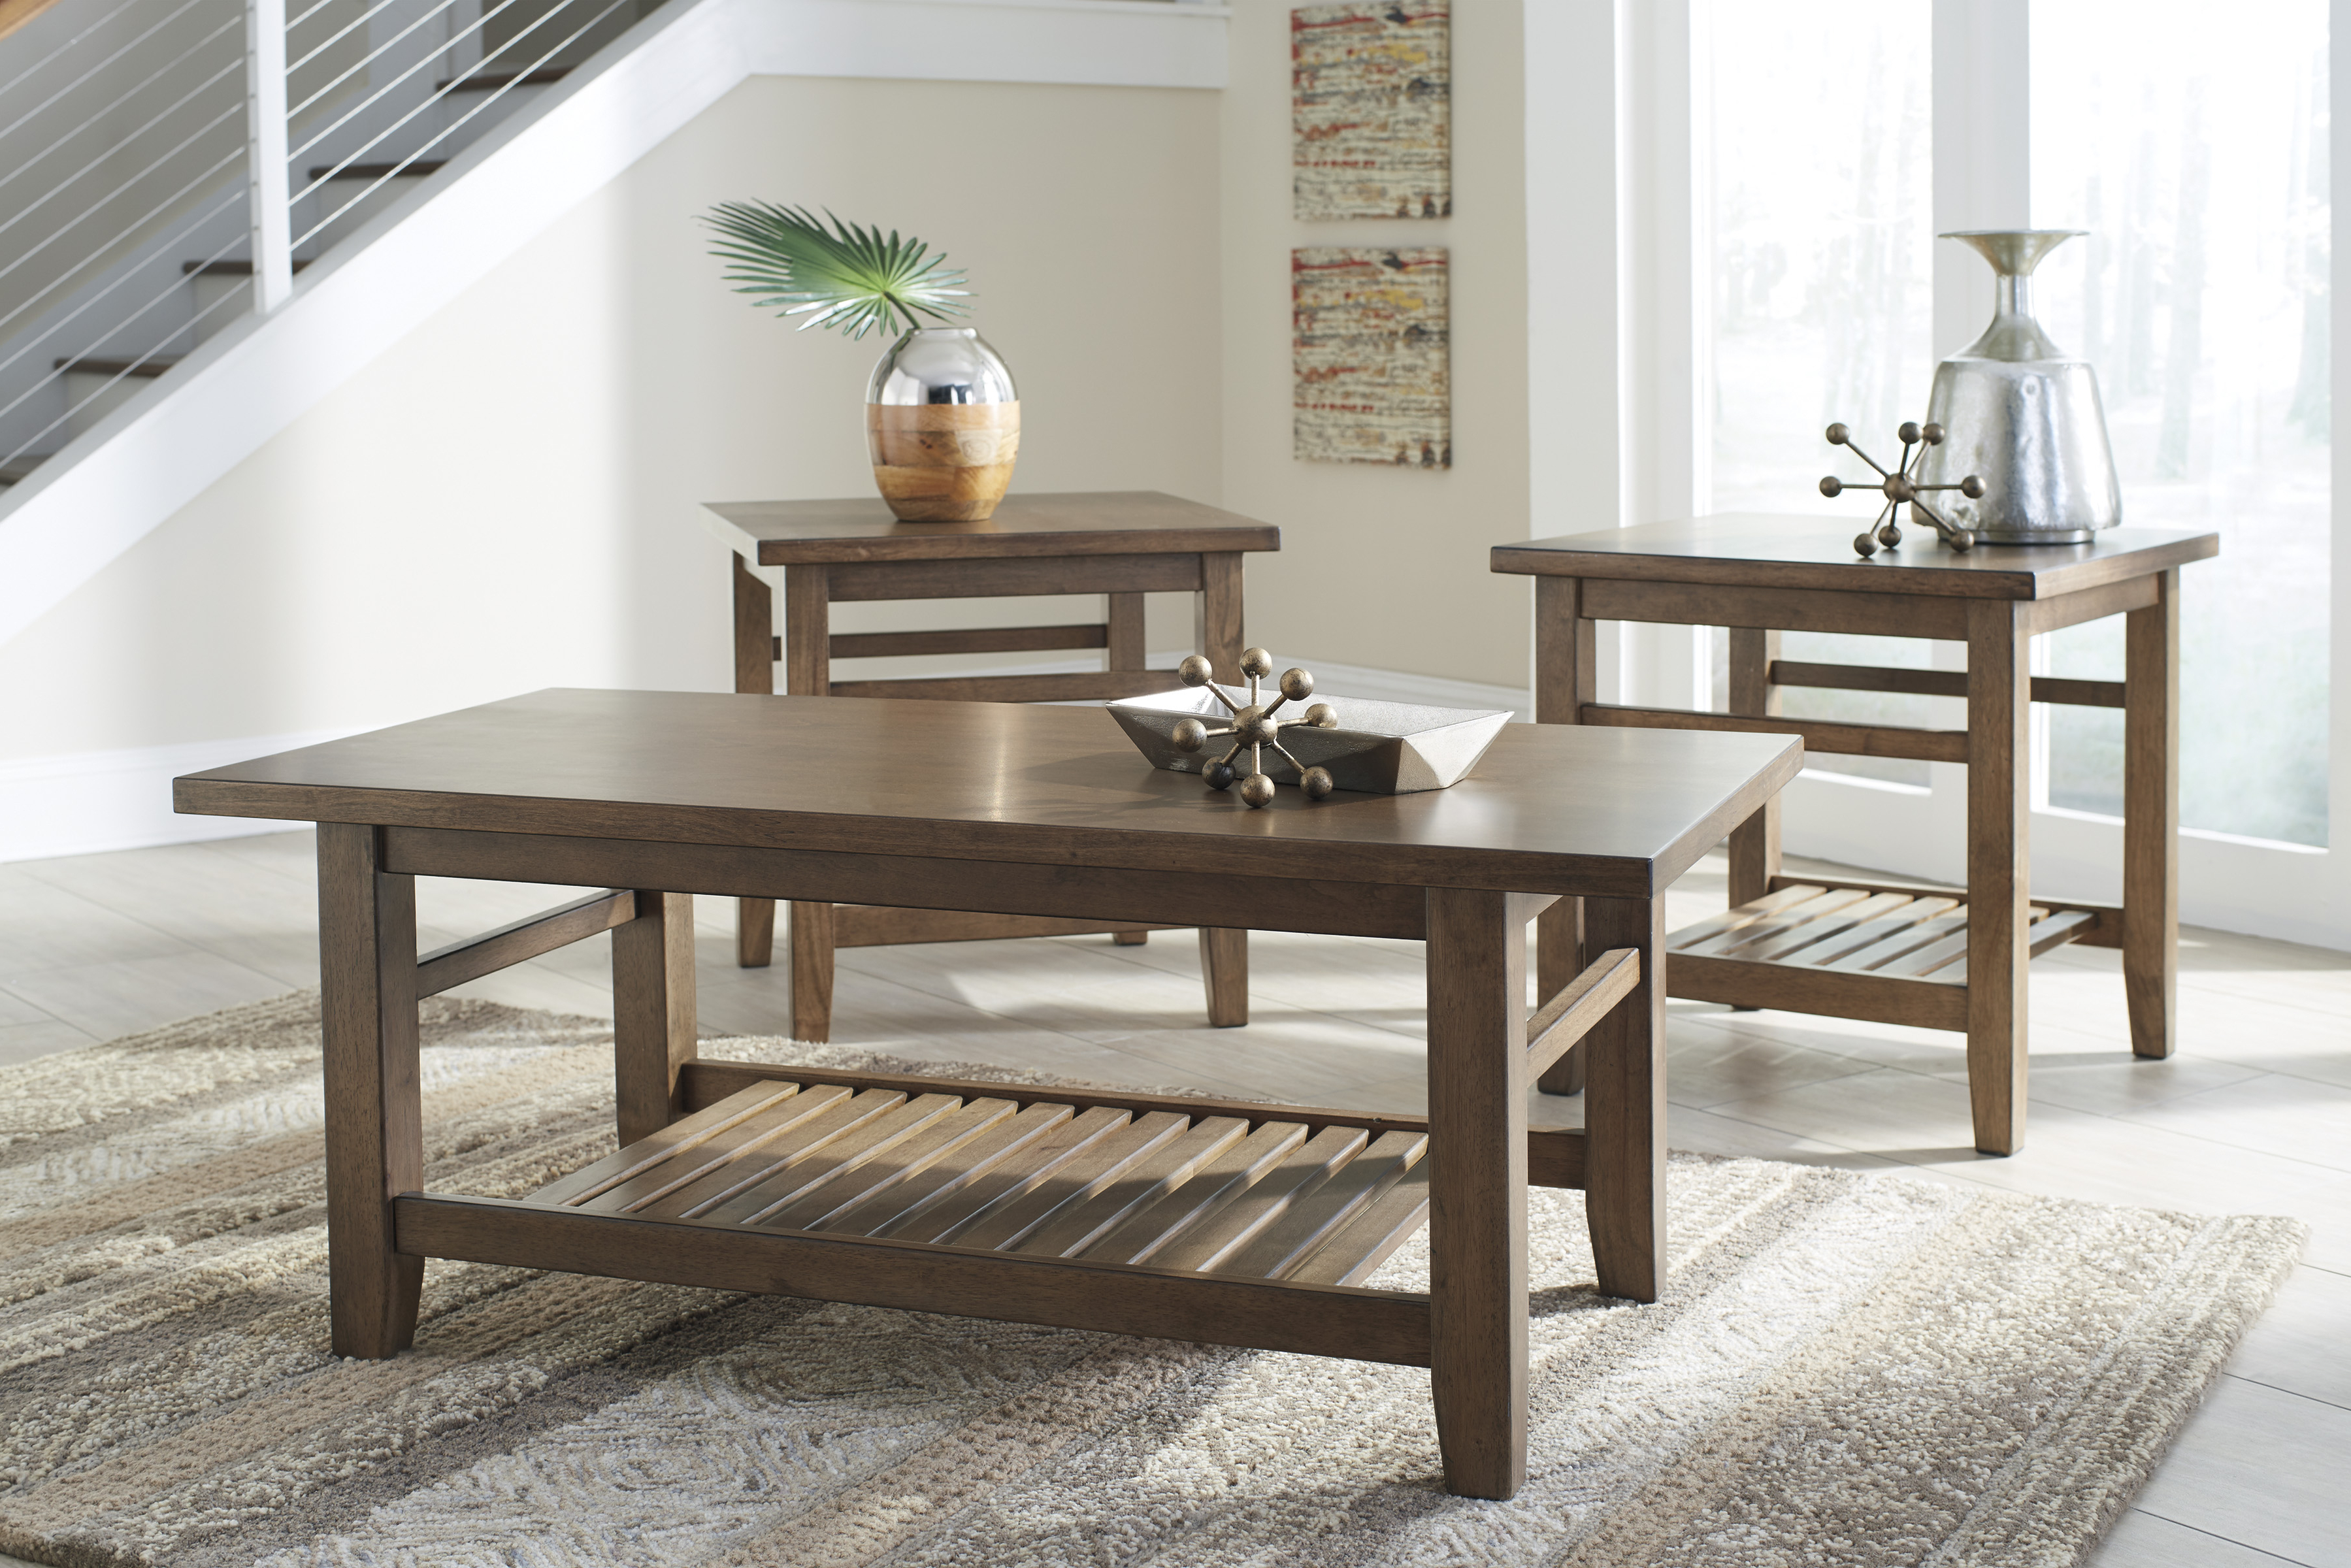 Fashionable Zantori Table Set – Brown's Furniture Showplace Within Jasper Lift Top Cocktail Tables (Gallery 9 of 20)